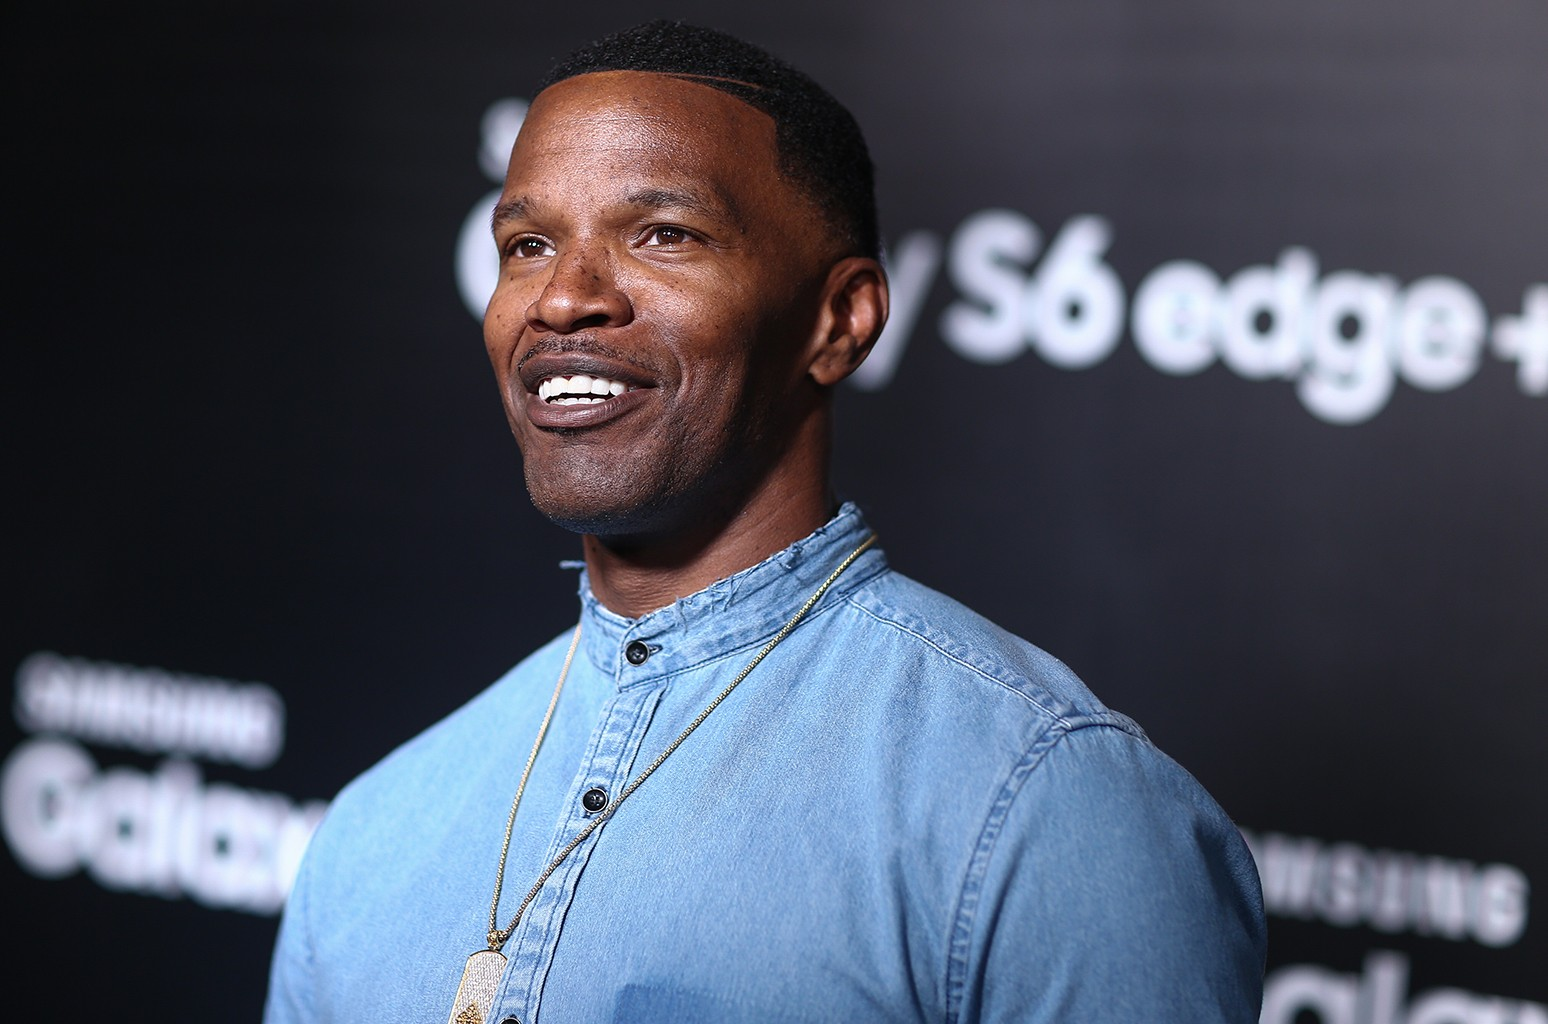 Jamie Foxx at The Lot Studios Aug. 18, 2015, in West Hollywood, Calif.